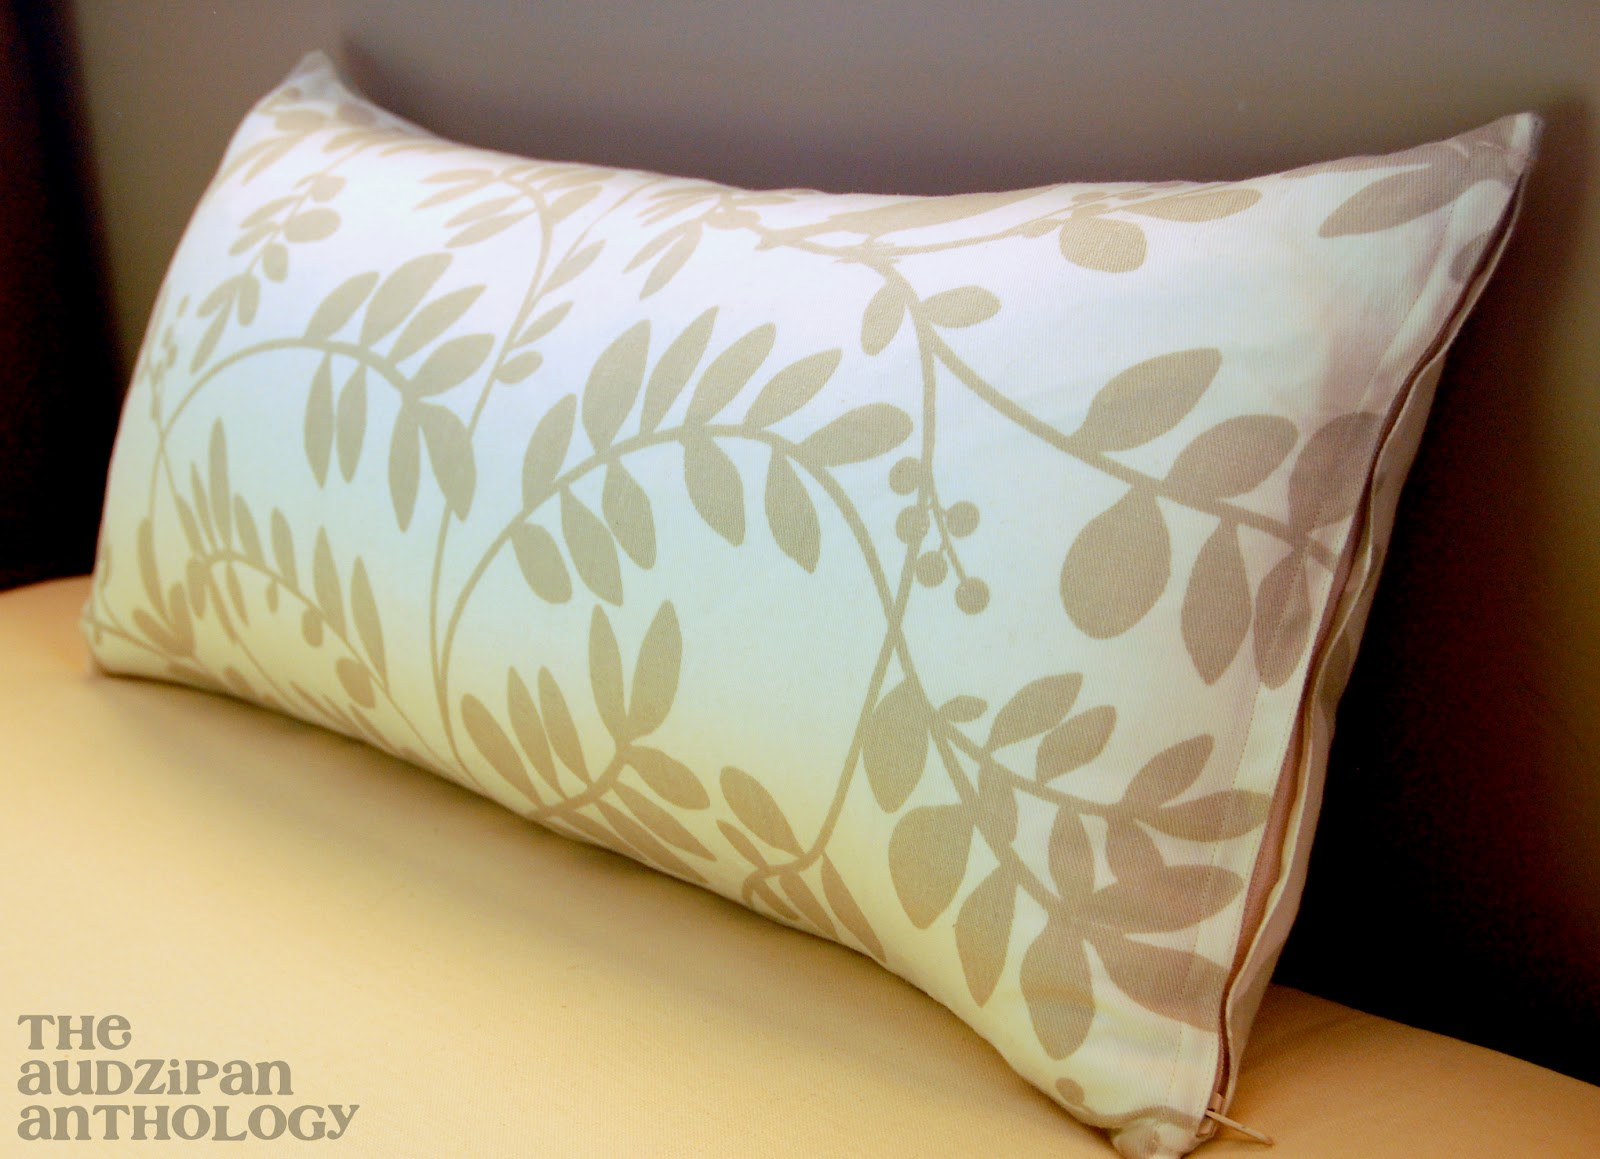 The Audzipan Anthology Zippered Pillow Cover Tutorial